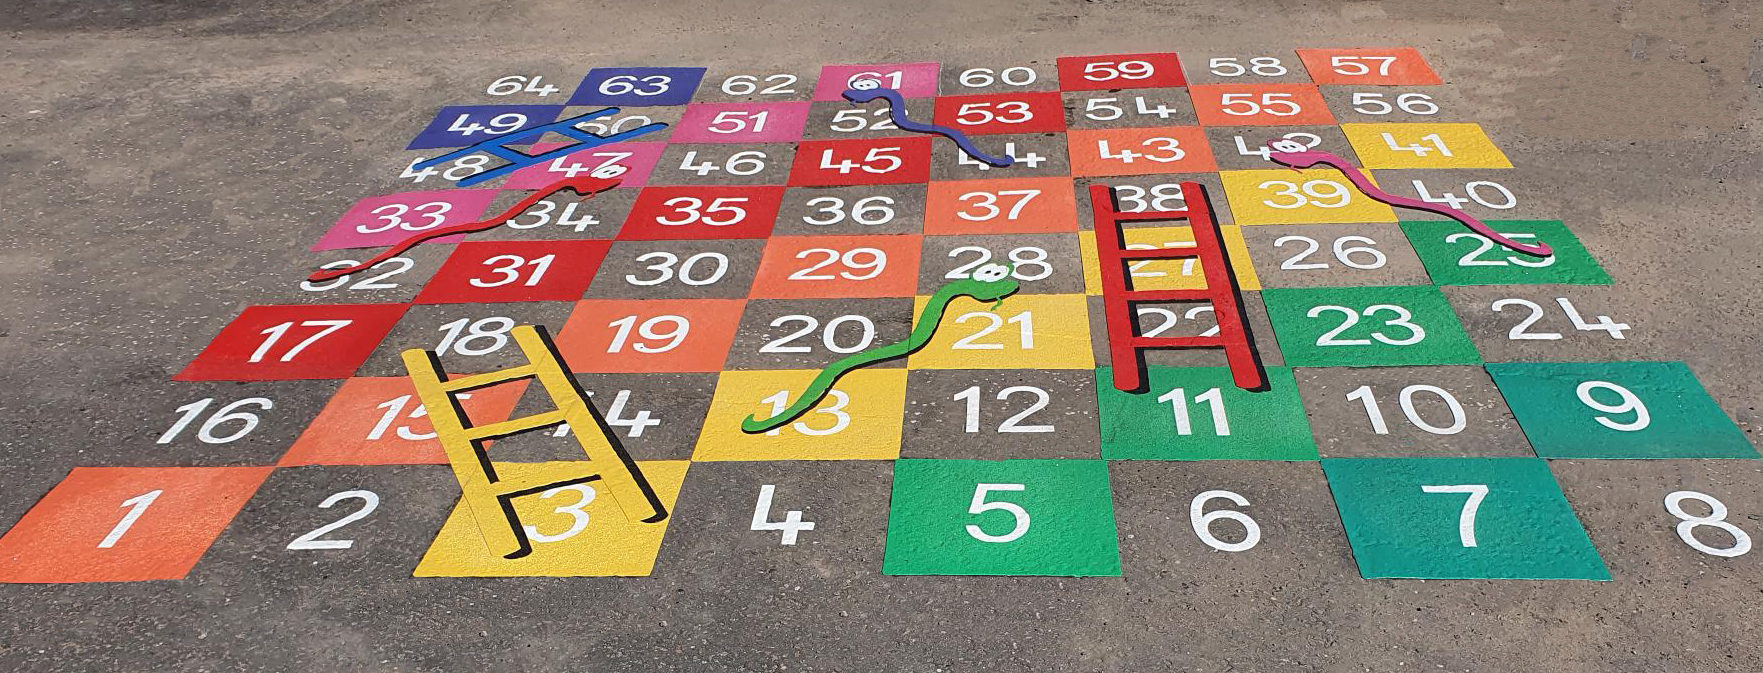 Snakes & Ladders 1-50